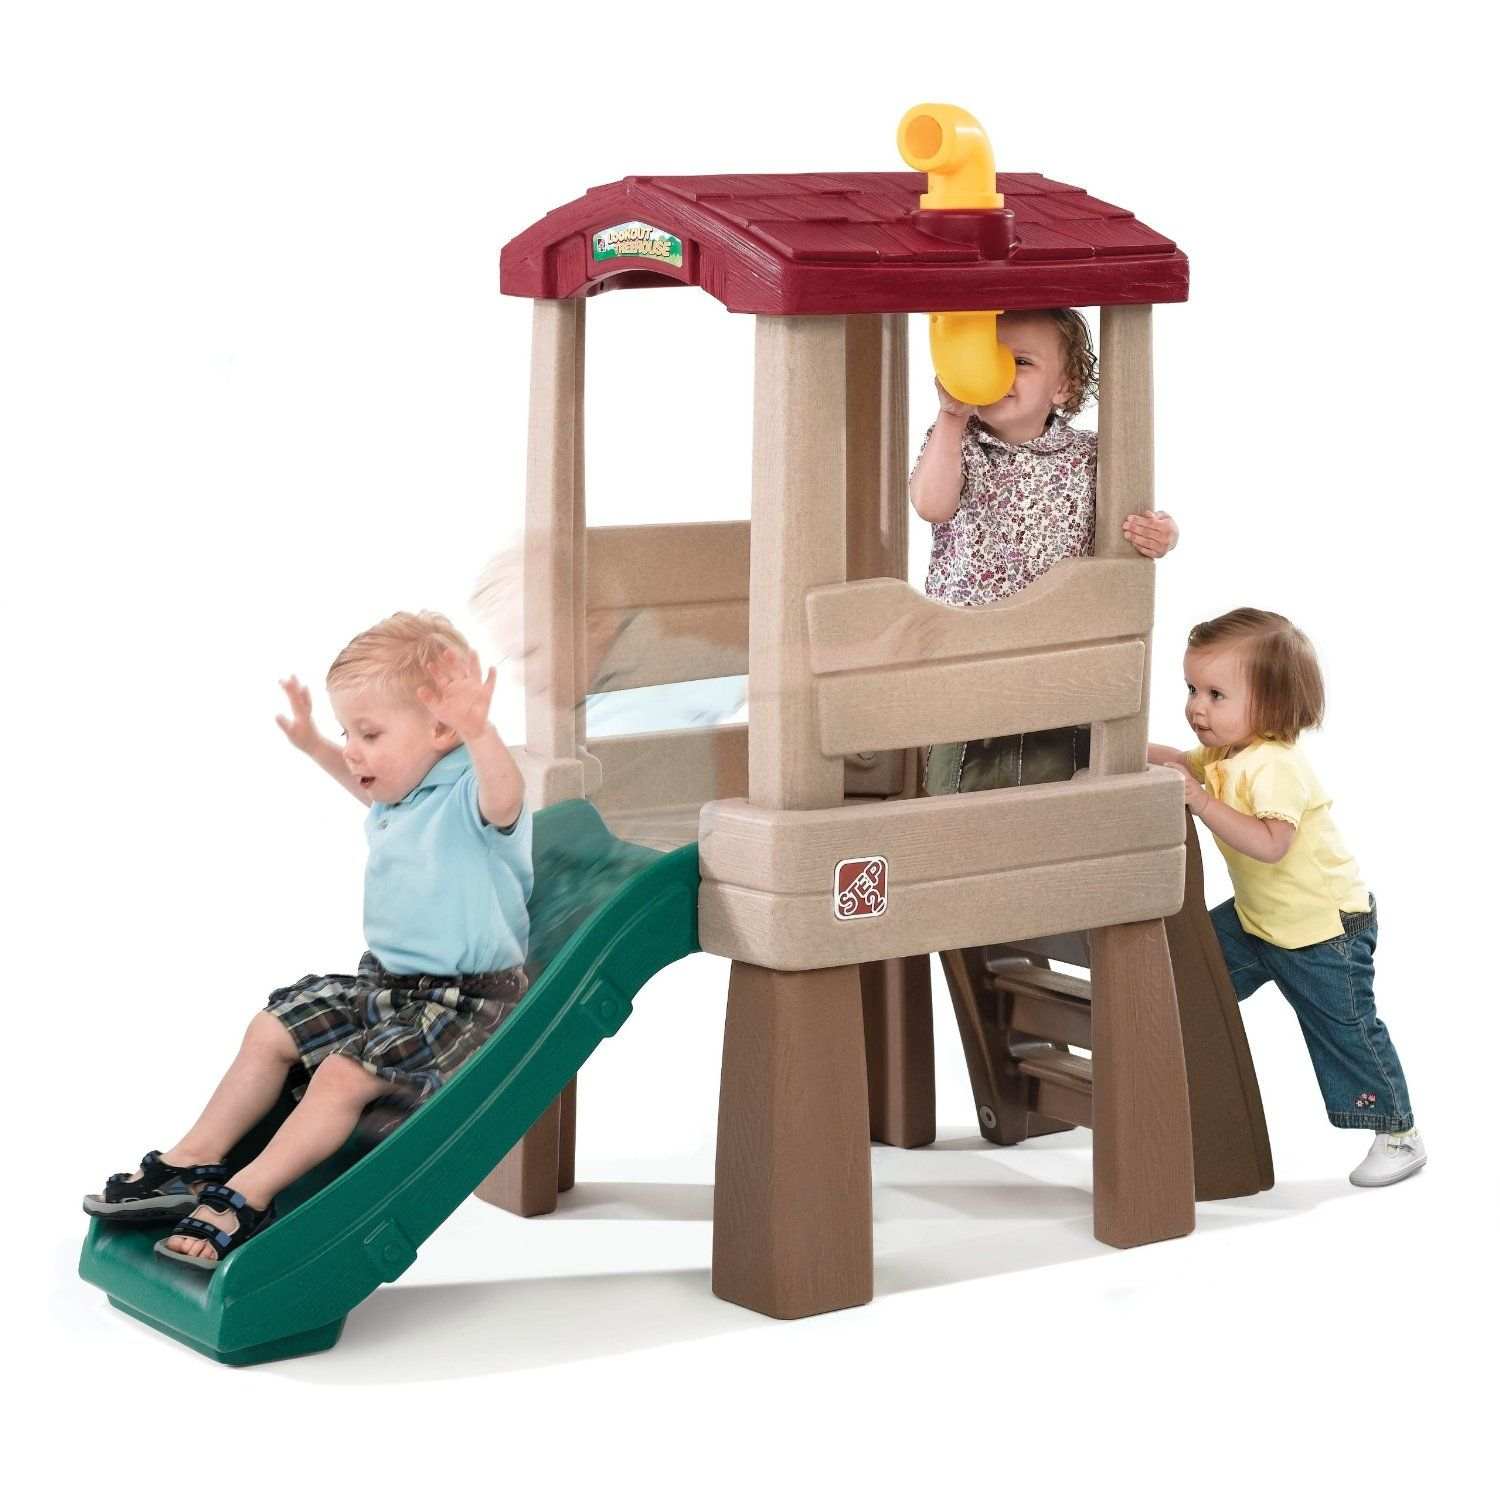 Finding the Best Outdoor Play Sets Outdoor ideas